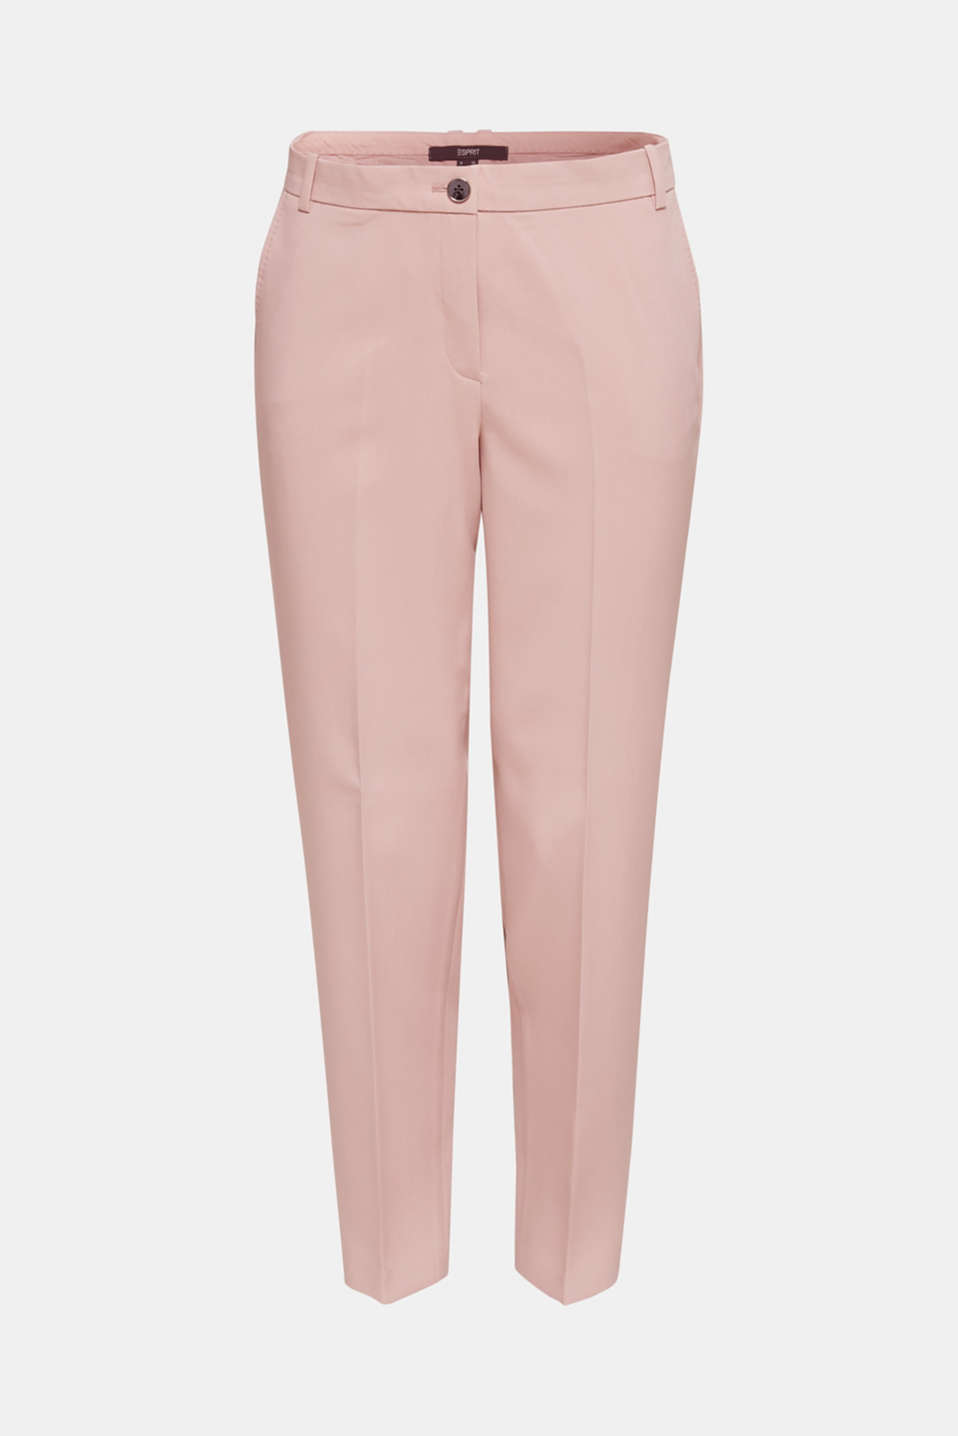 SPRING Mix + Match stretch trousers, OLD PINK, detail image number 7